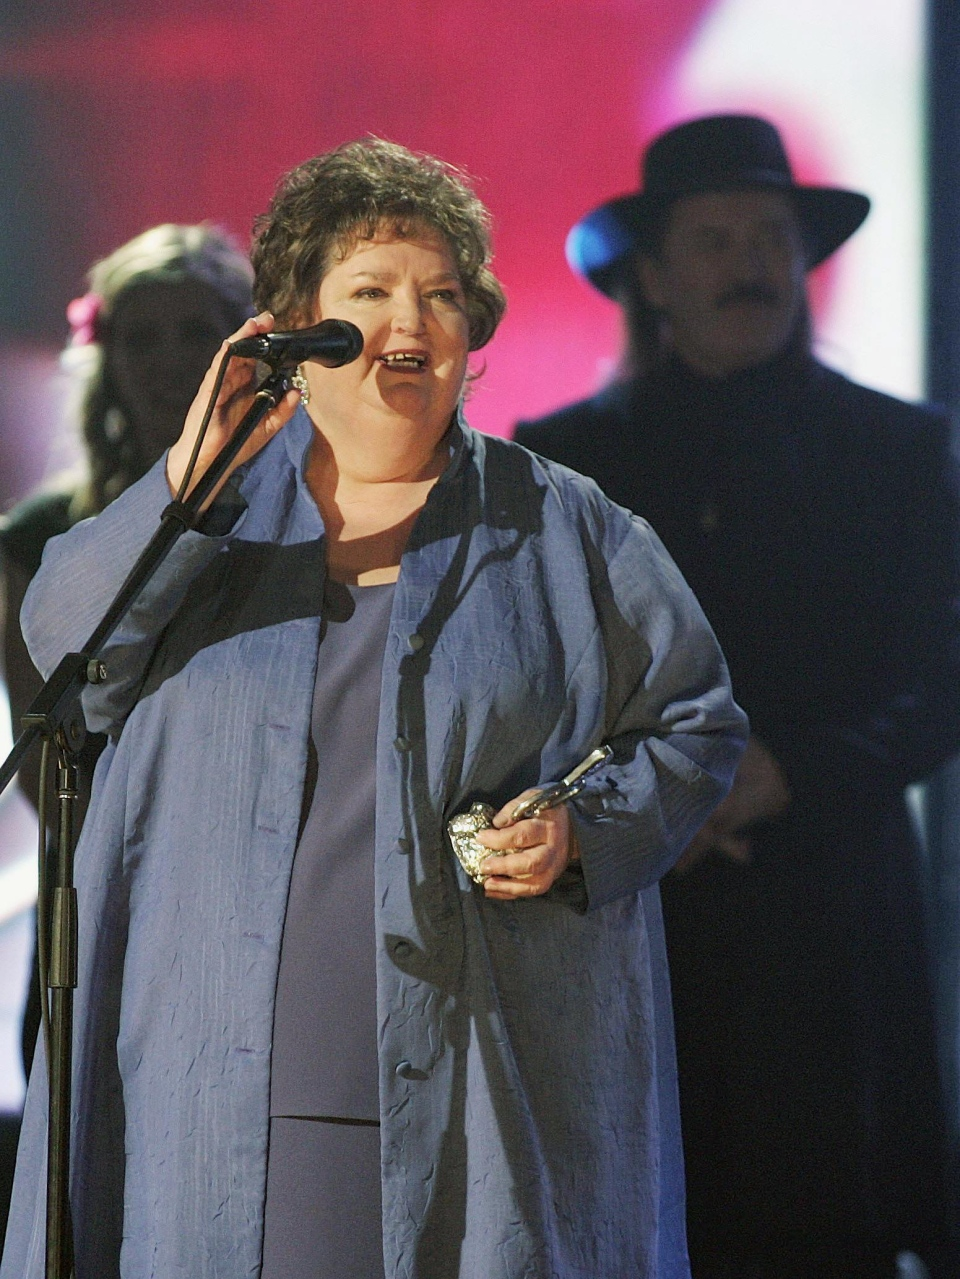 Rita MacNeil speaks after receiving a lifetime achievement award at the East Coast Music Awards in Sydney N.S. on Sunday Feb. 20, 2005. (CP / Jacques Boissinot)